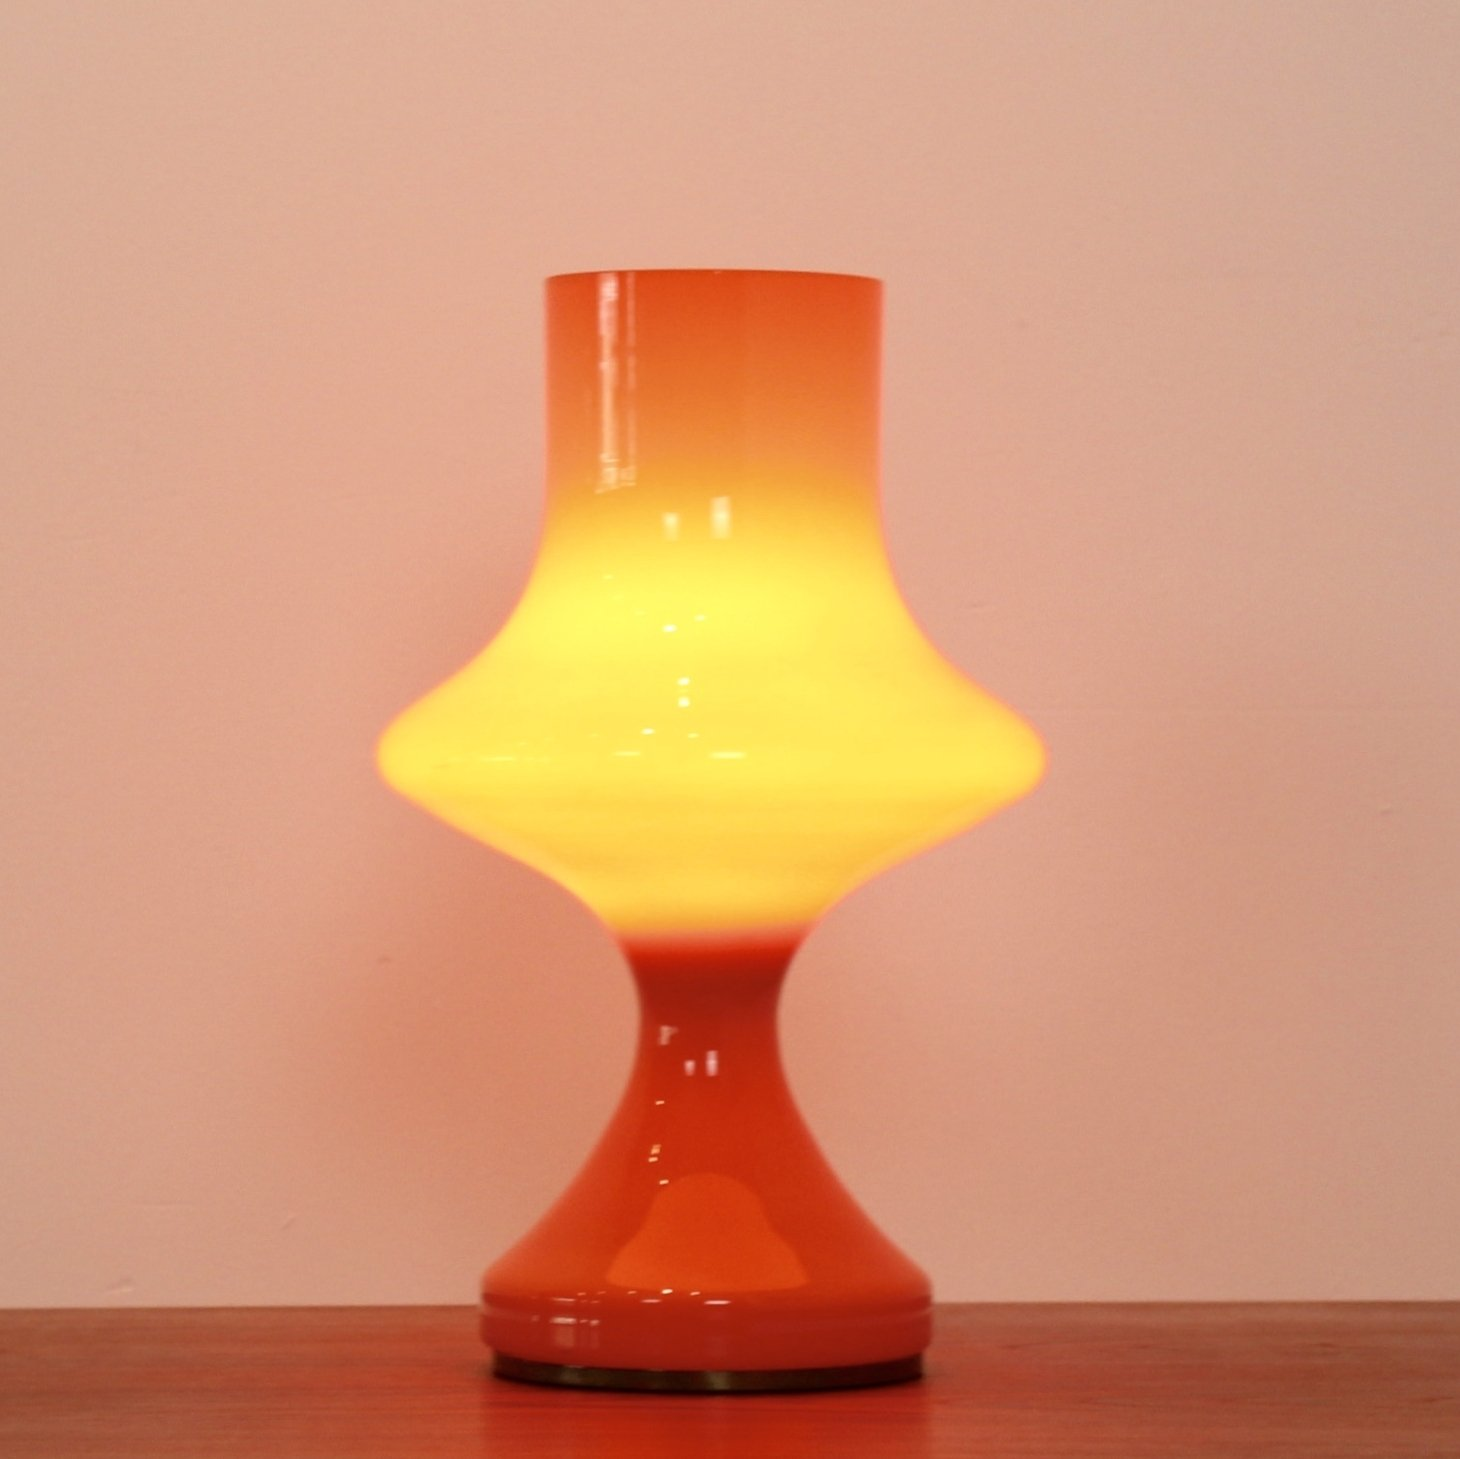 overstock oliver garden home modern today table product lamp james free anri orange shipping lamps